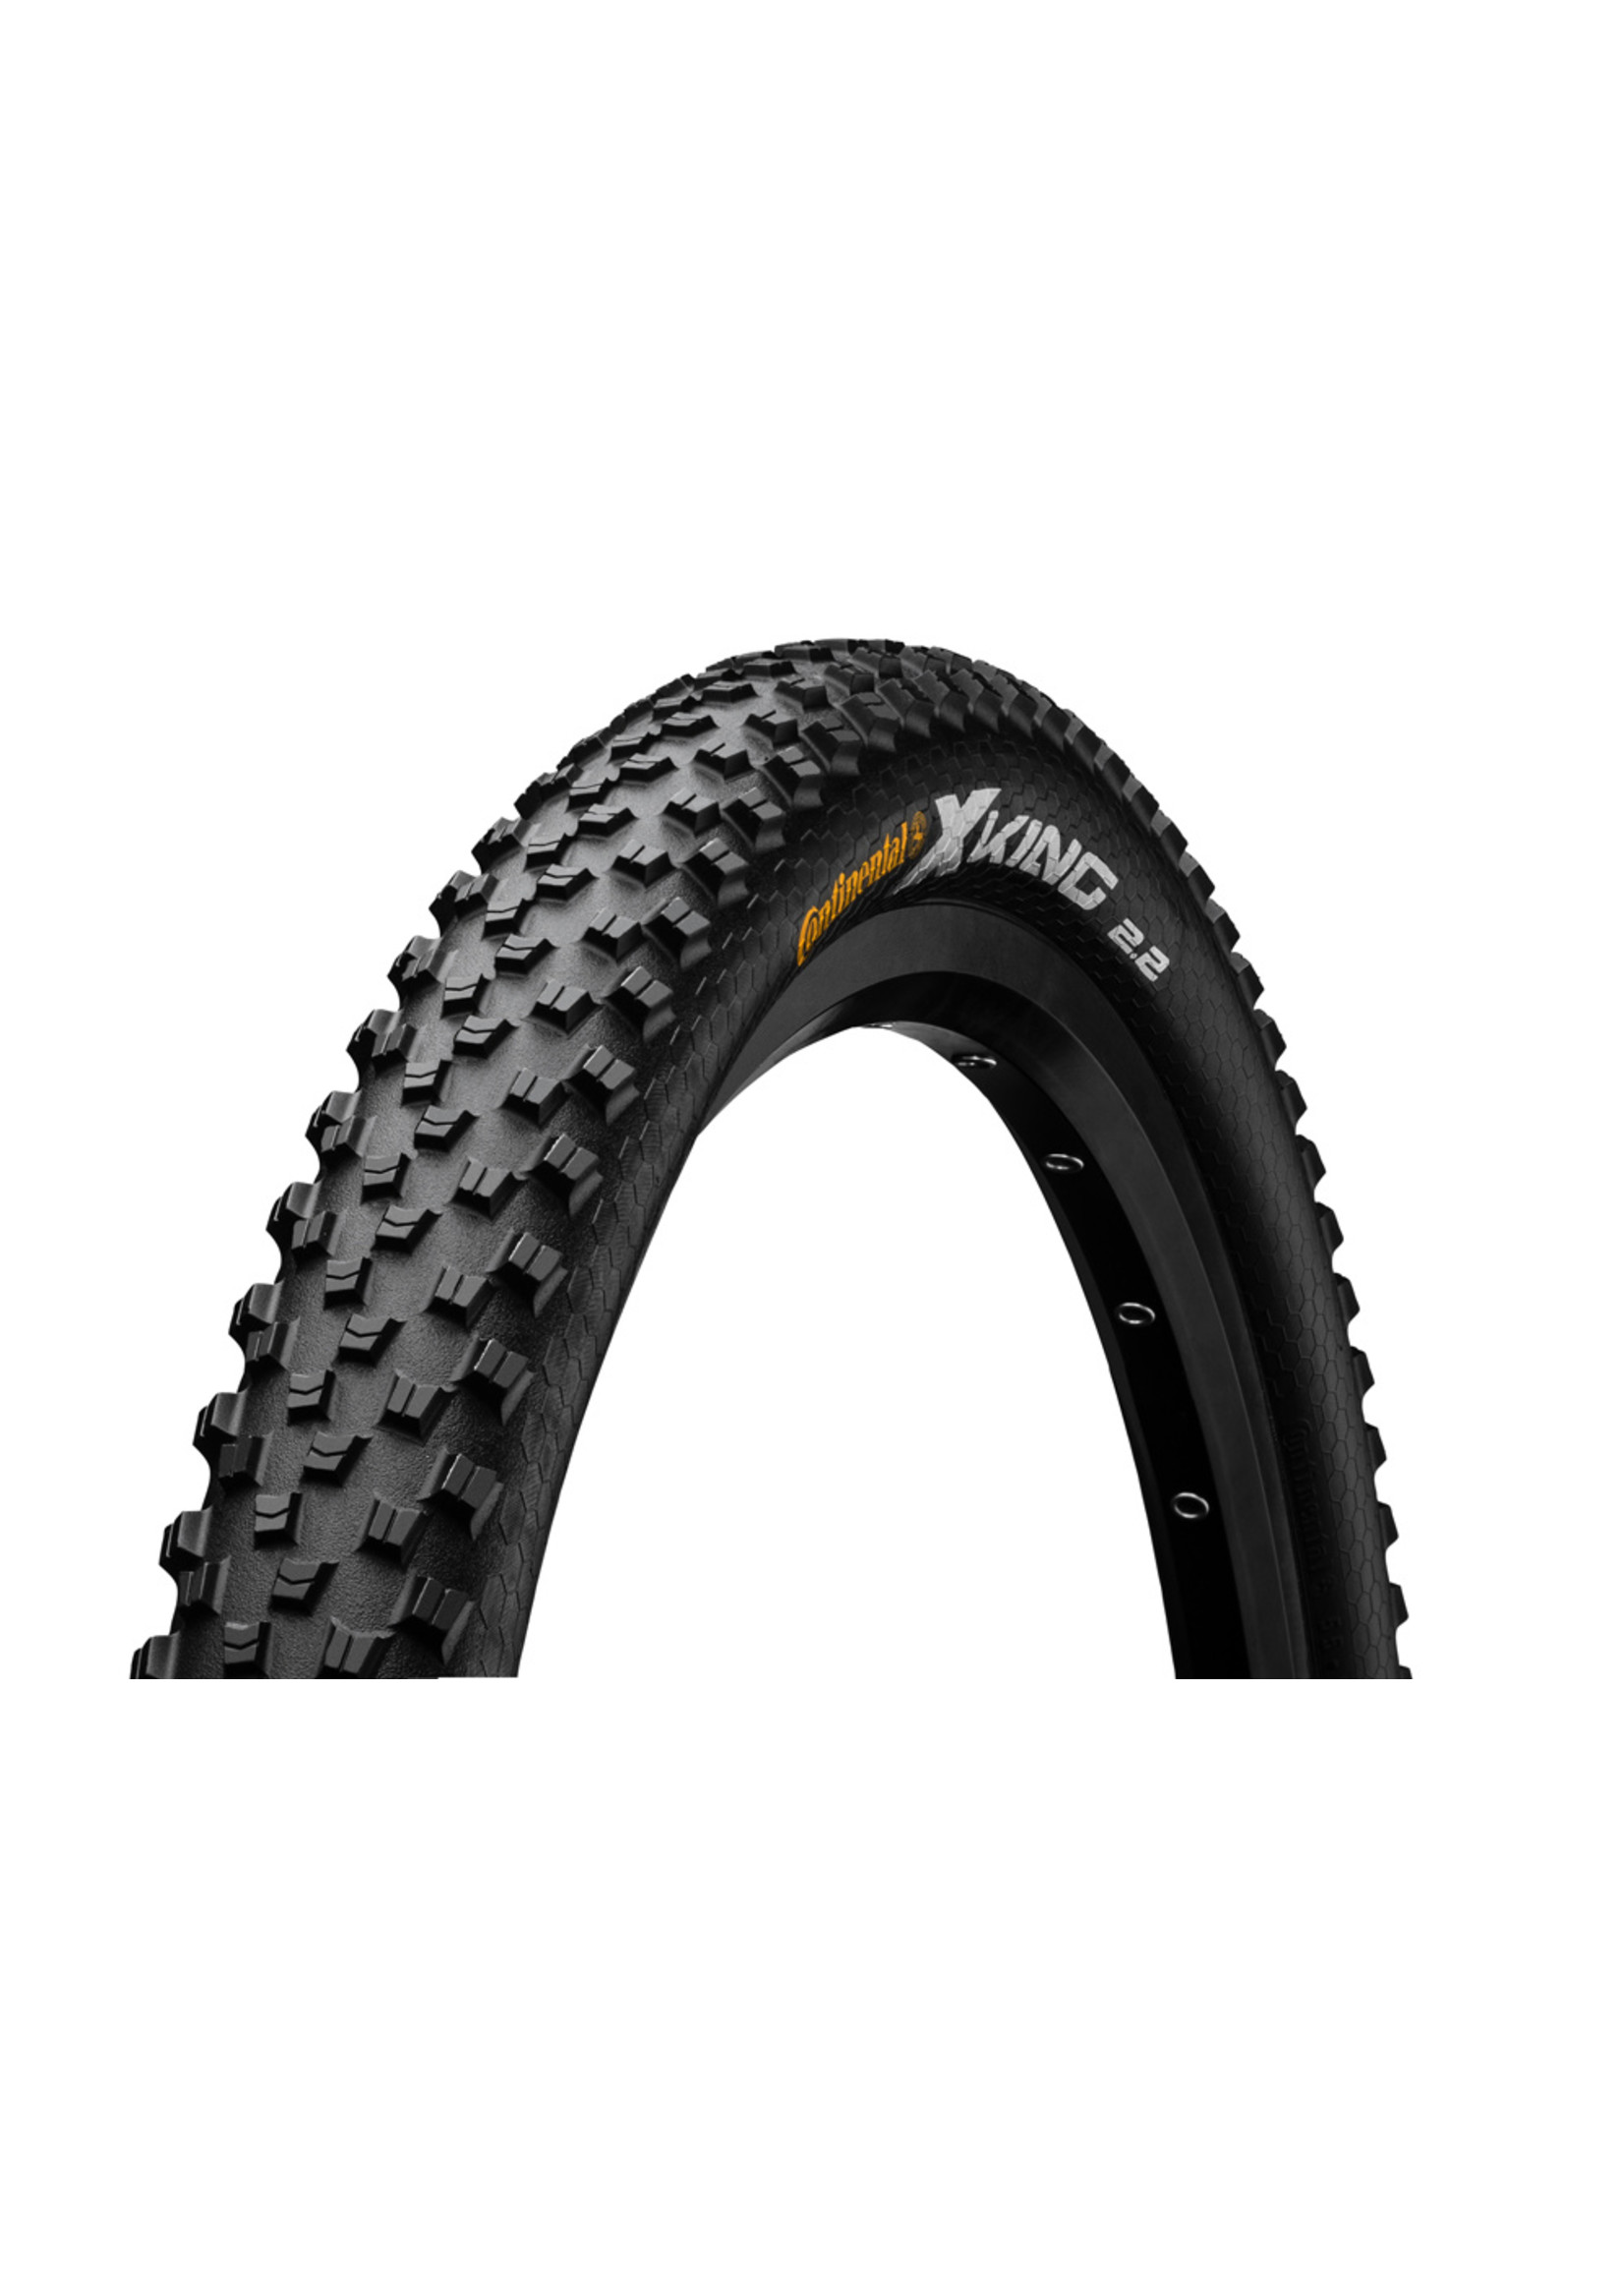 Continental X-King 2.2 Performance Tyre